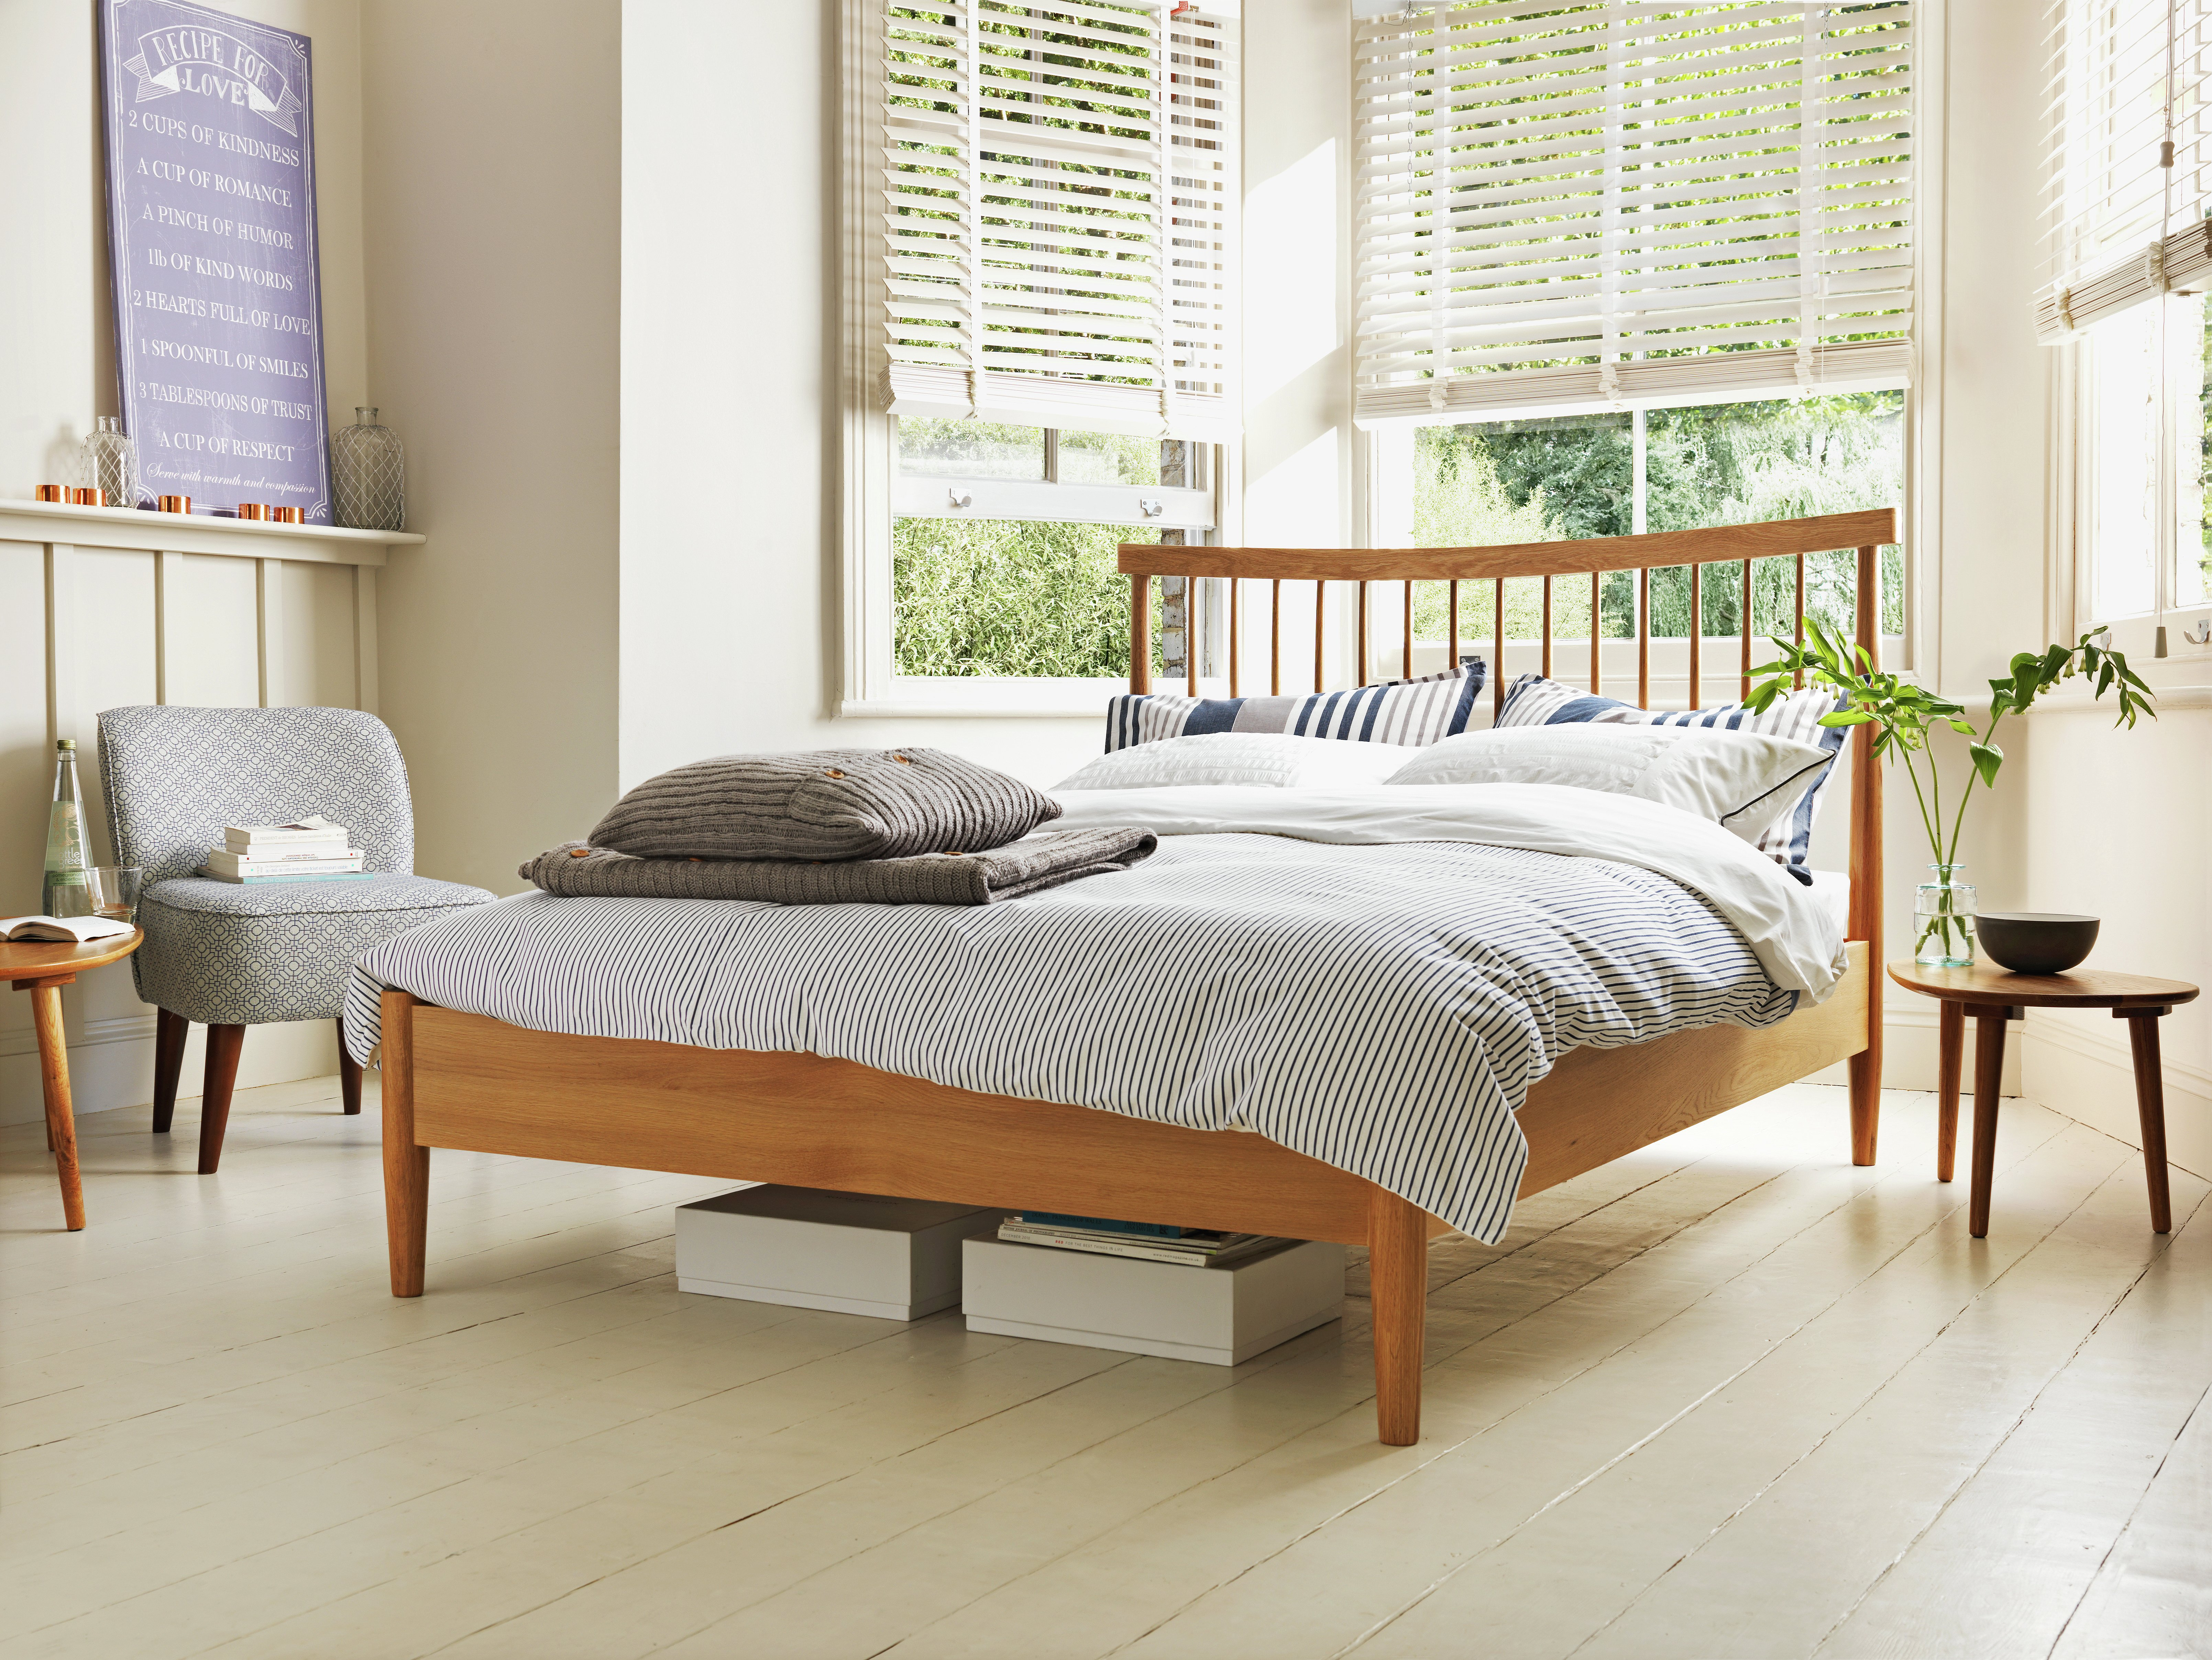 buy heart of house dorset double spindle bed frame - oak at argos